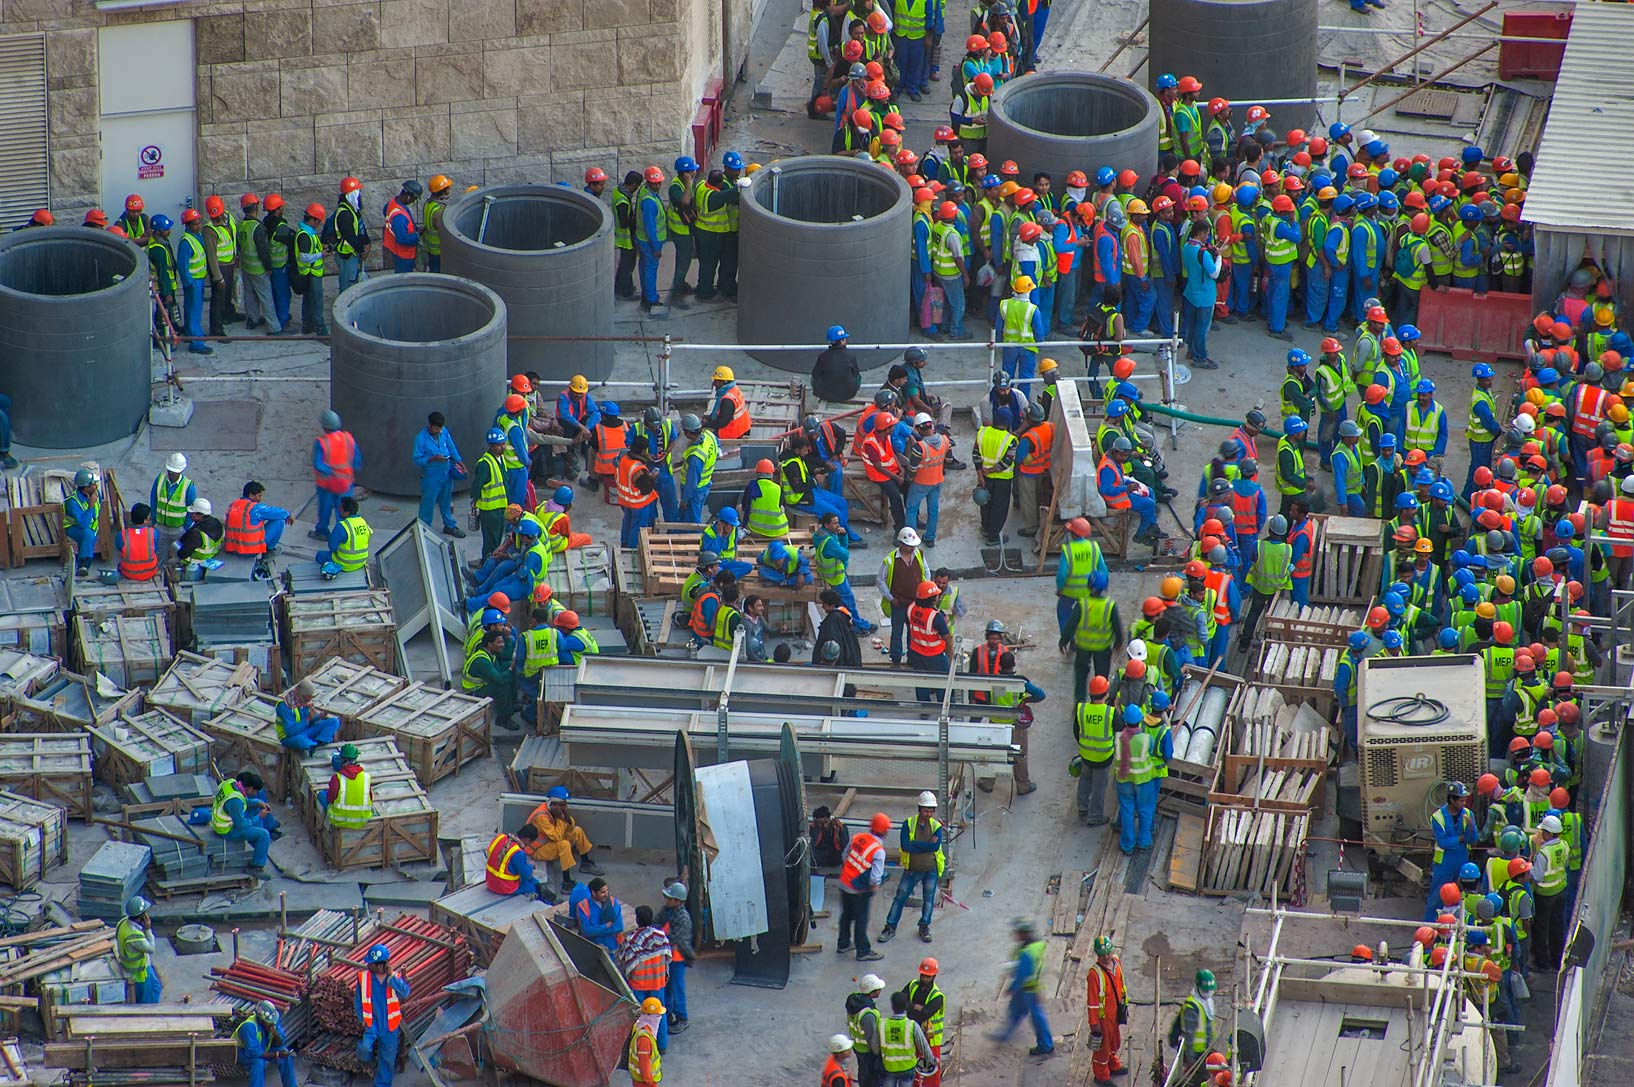 Workers gathering on construction of Qatar...1-2244 of Ezdan Hotel. Doha, Qatar